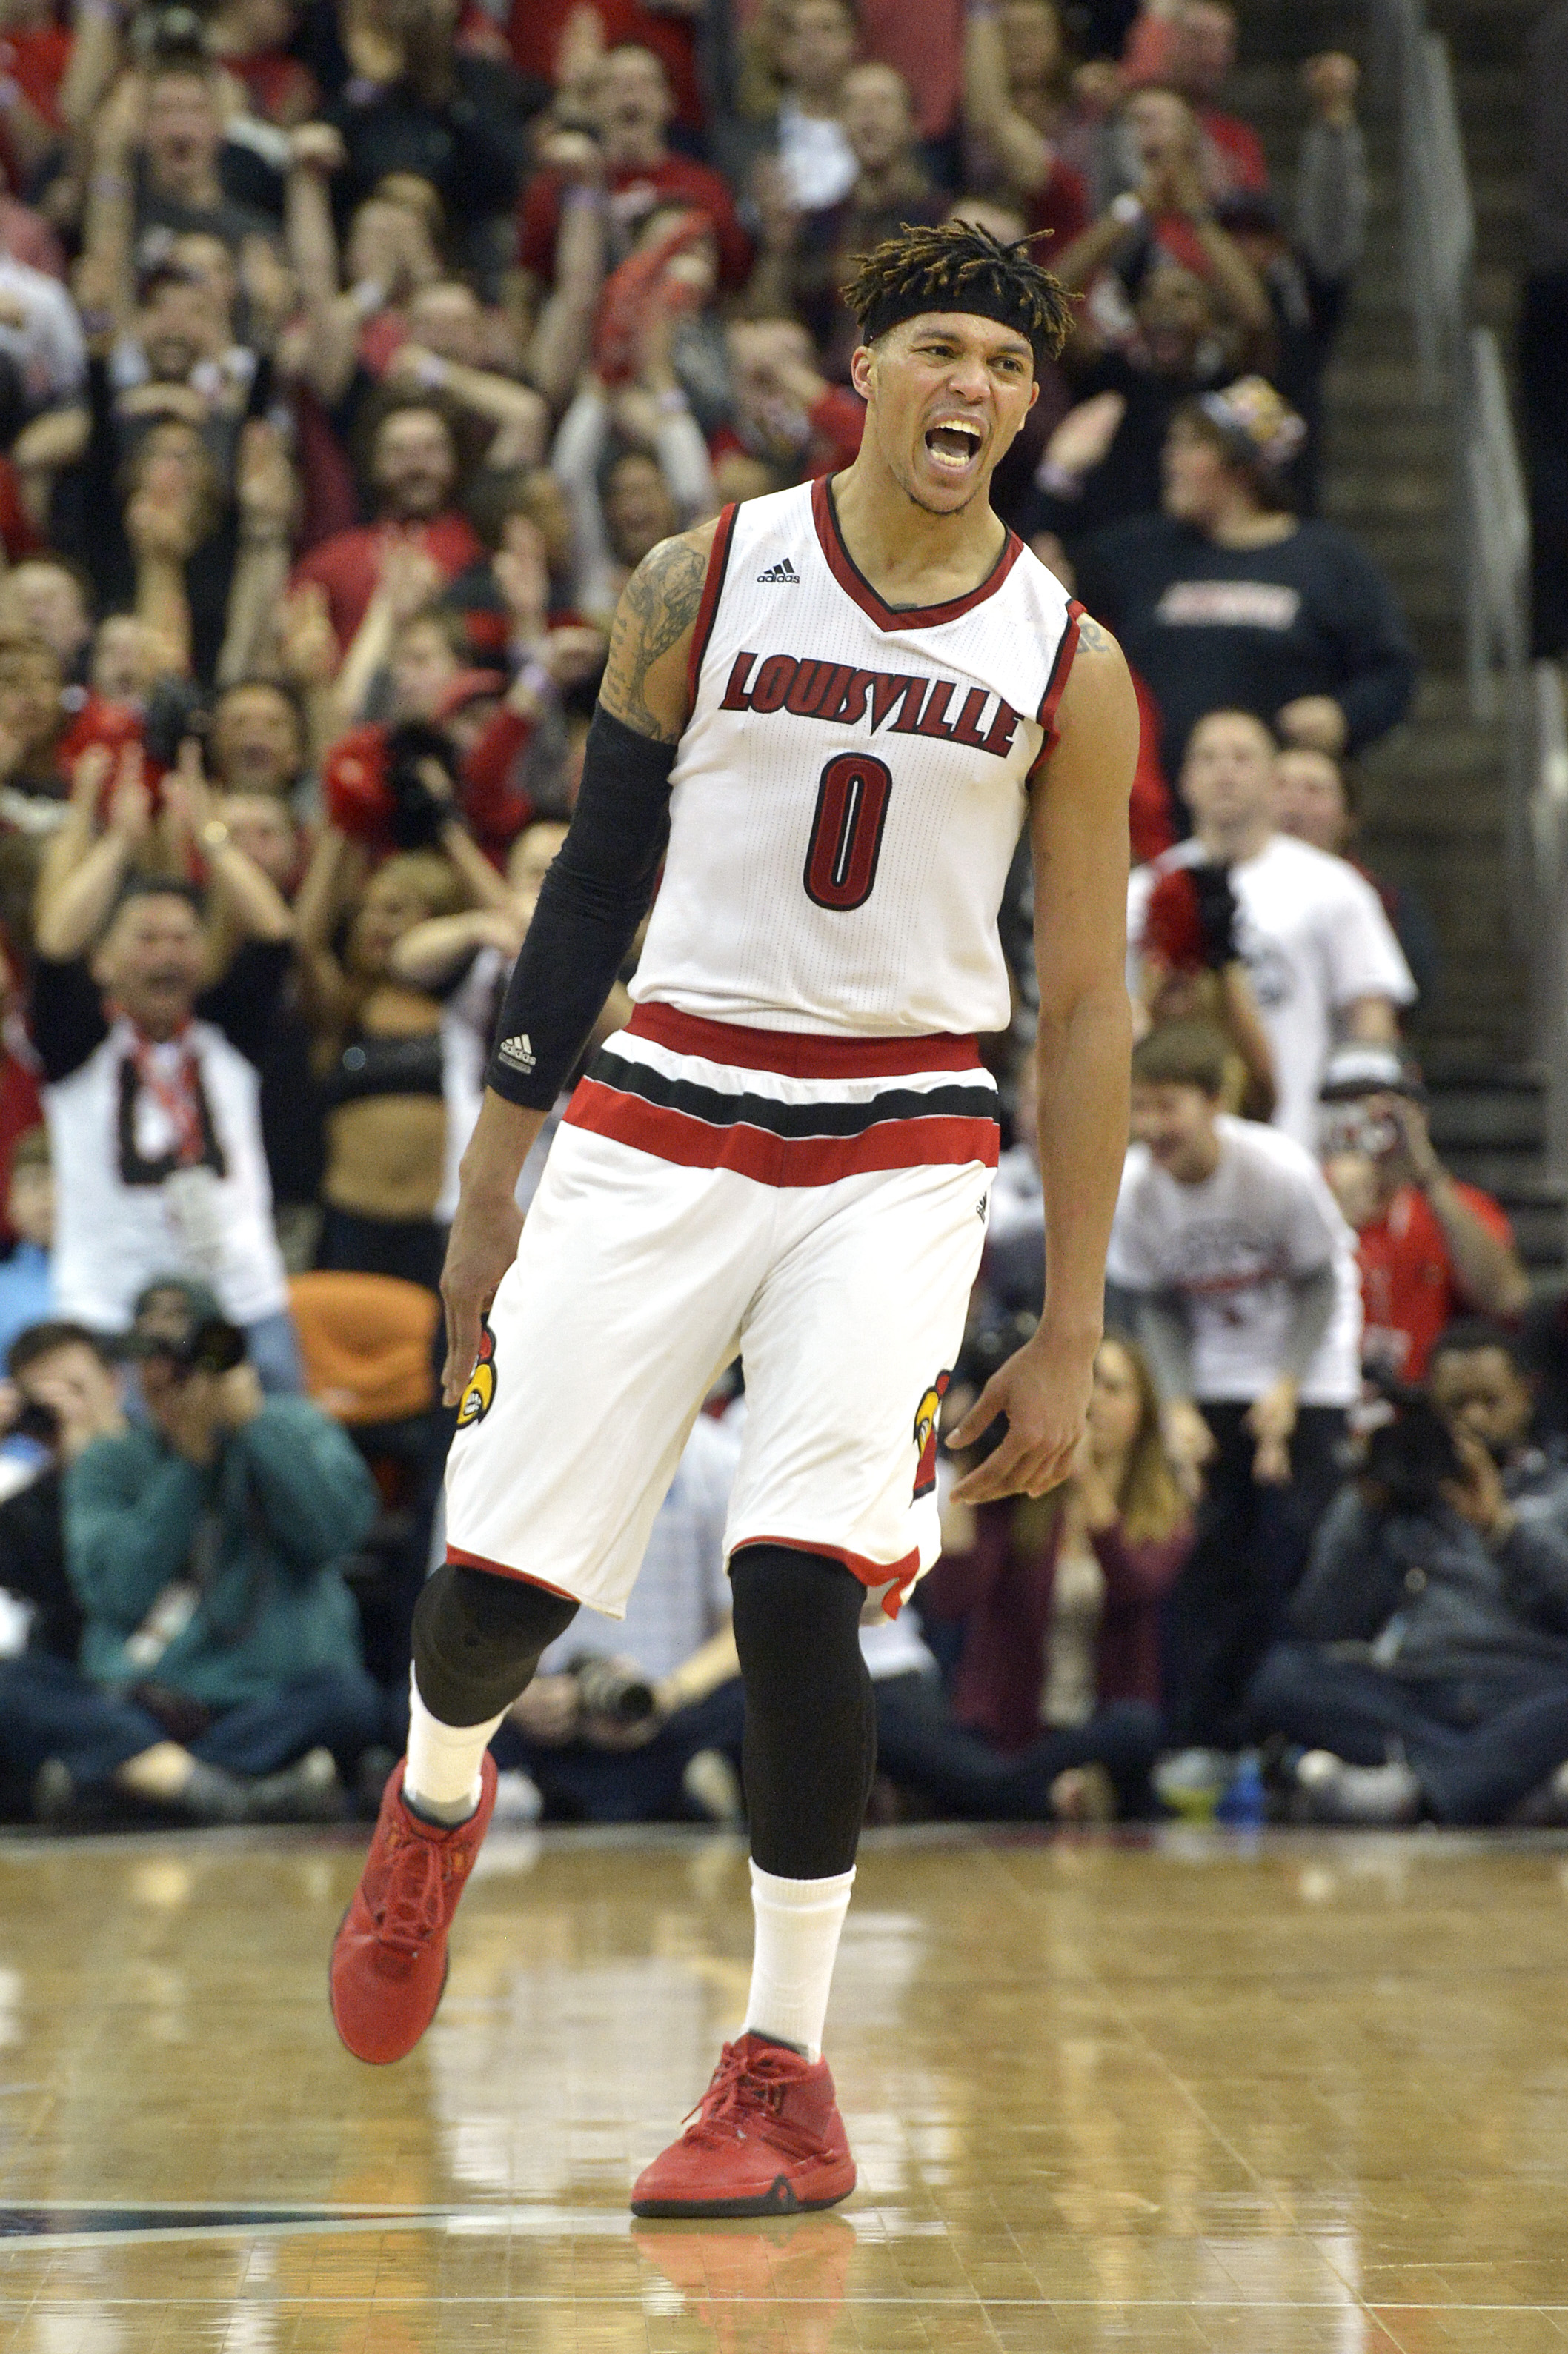 Louisville's Damion Lee reacts following a three-point basket during the second half of an NCAA college basketball game against North Carolina, Monday, Feb. 1, 2016, in Louisville, Ky. Louisville won 71-65. (AP Photo/Timothy D. Easley)